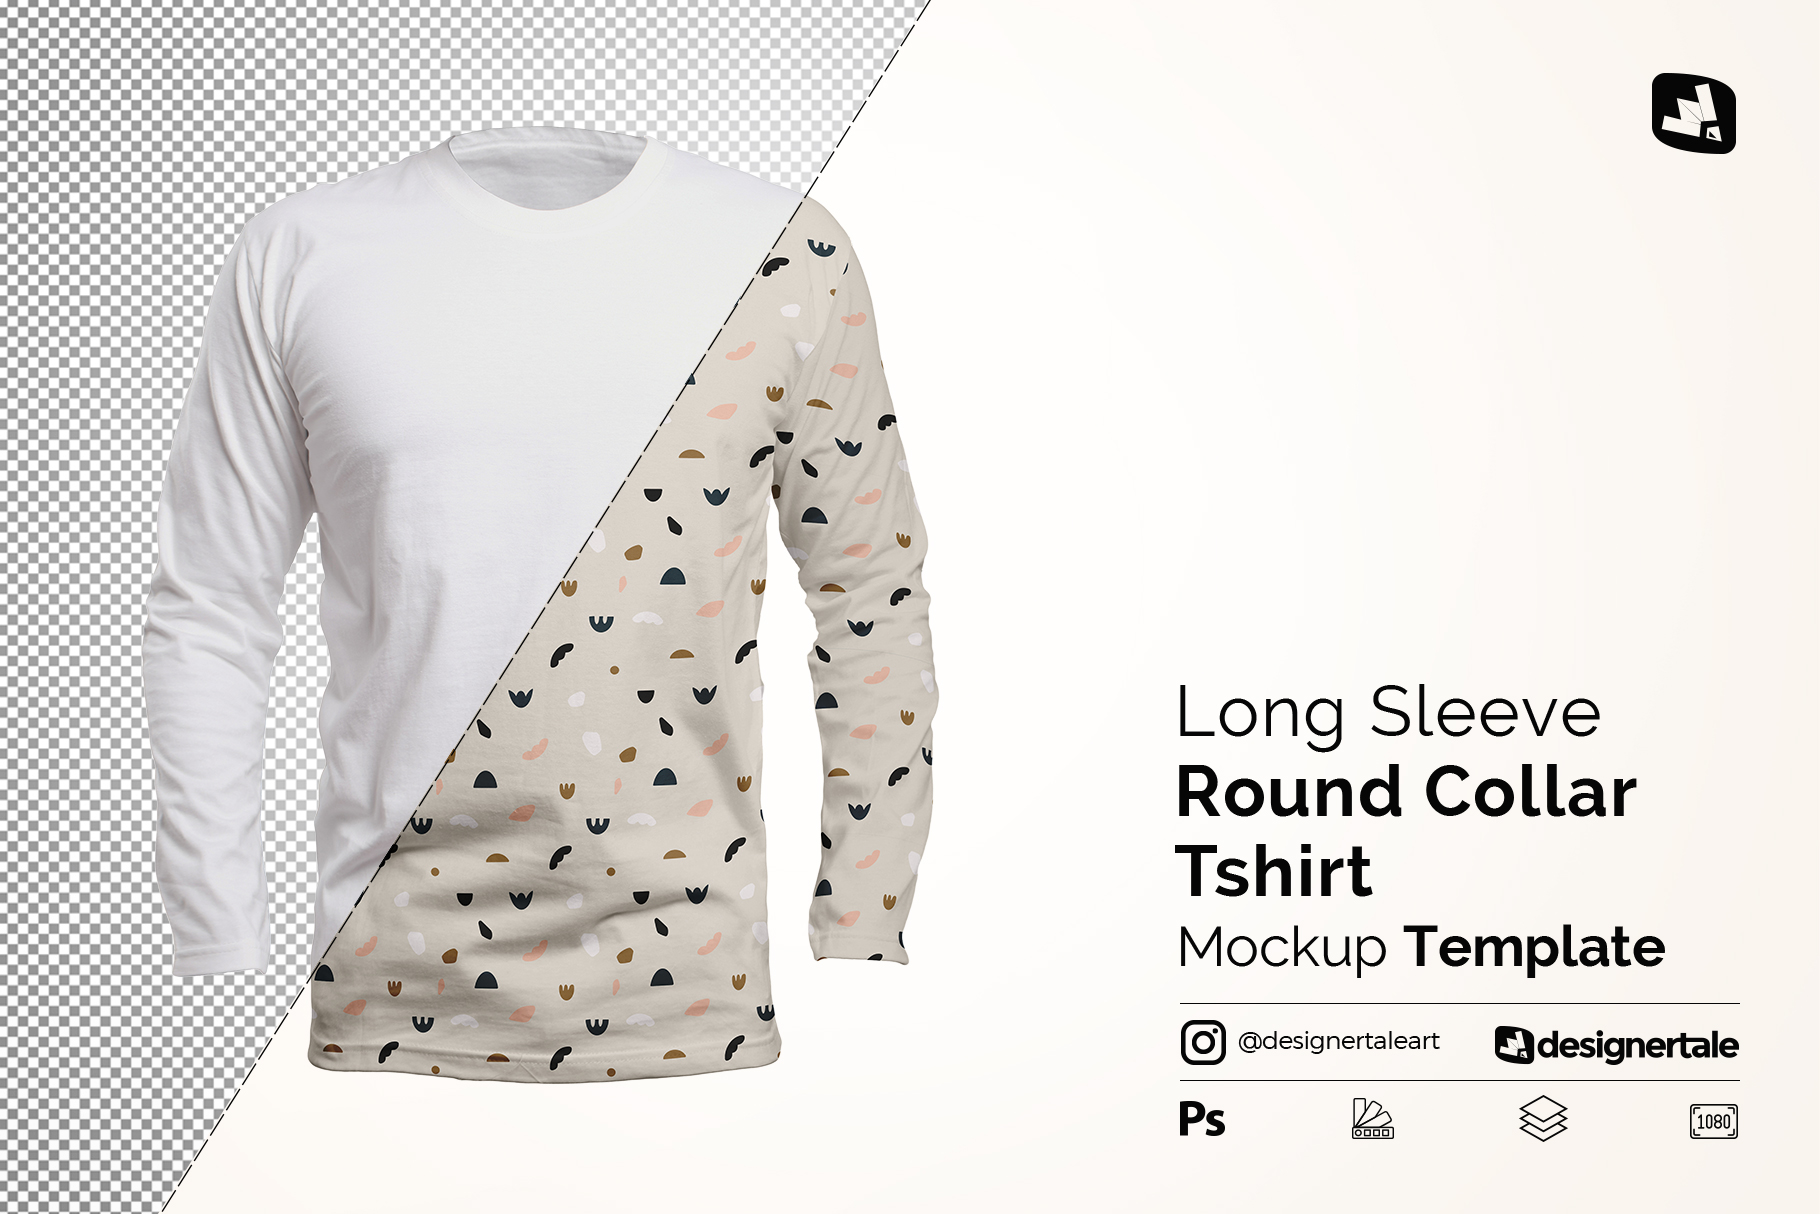 long sleeve round collar tshirt mockup